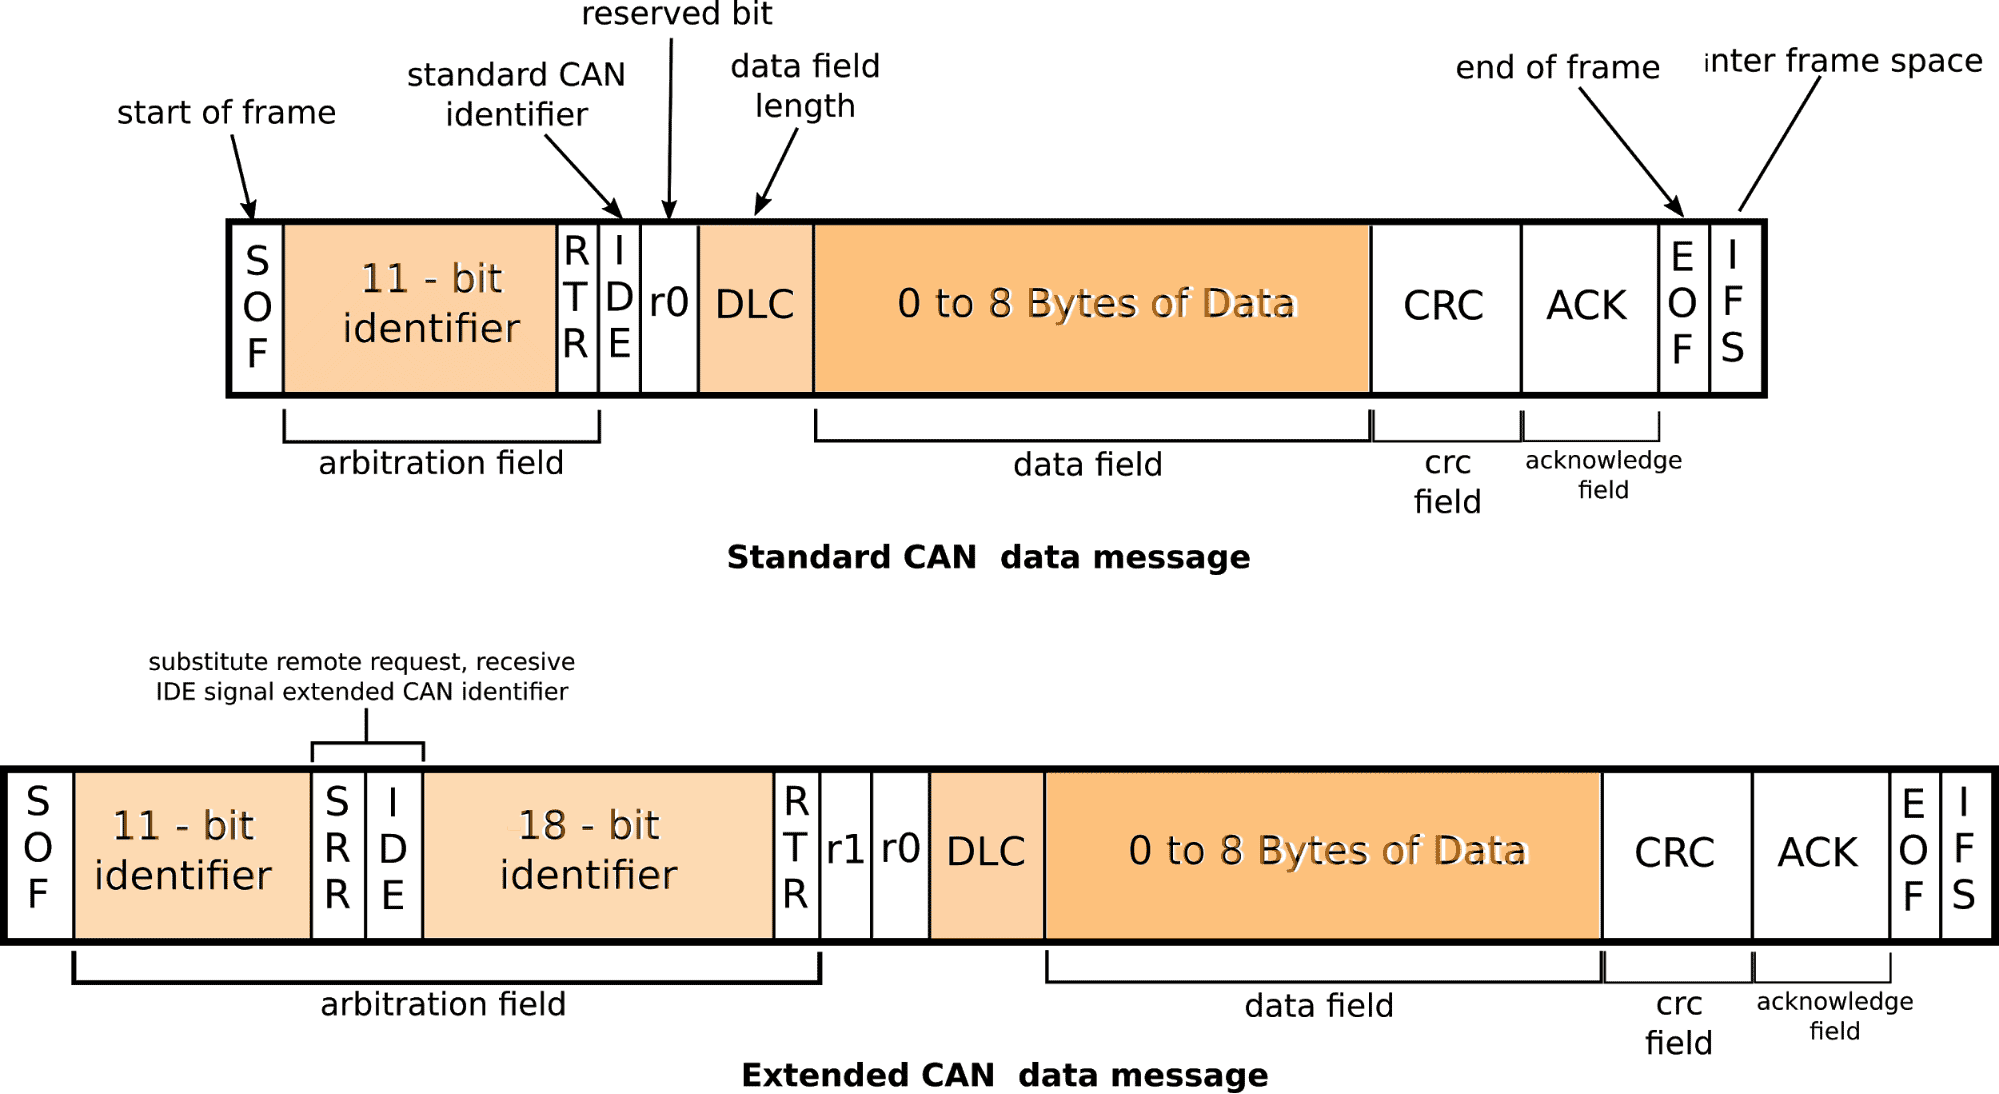 Standard and Extended frame of the CAN data message architecture